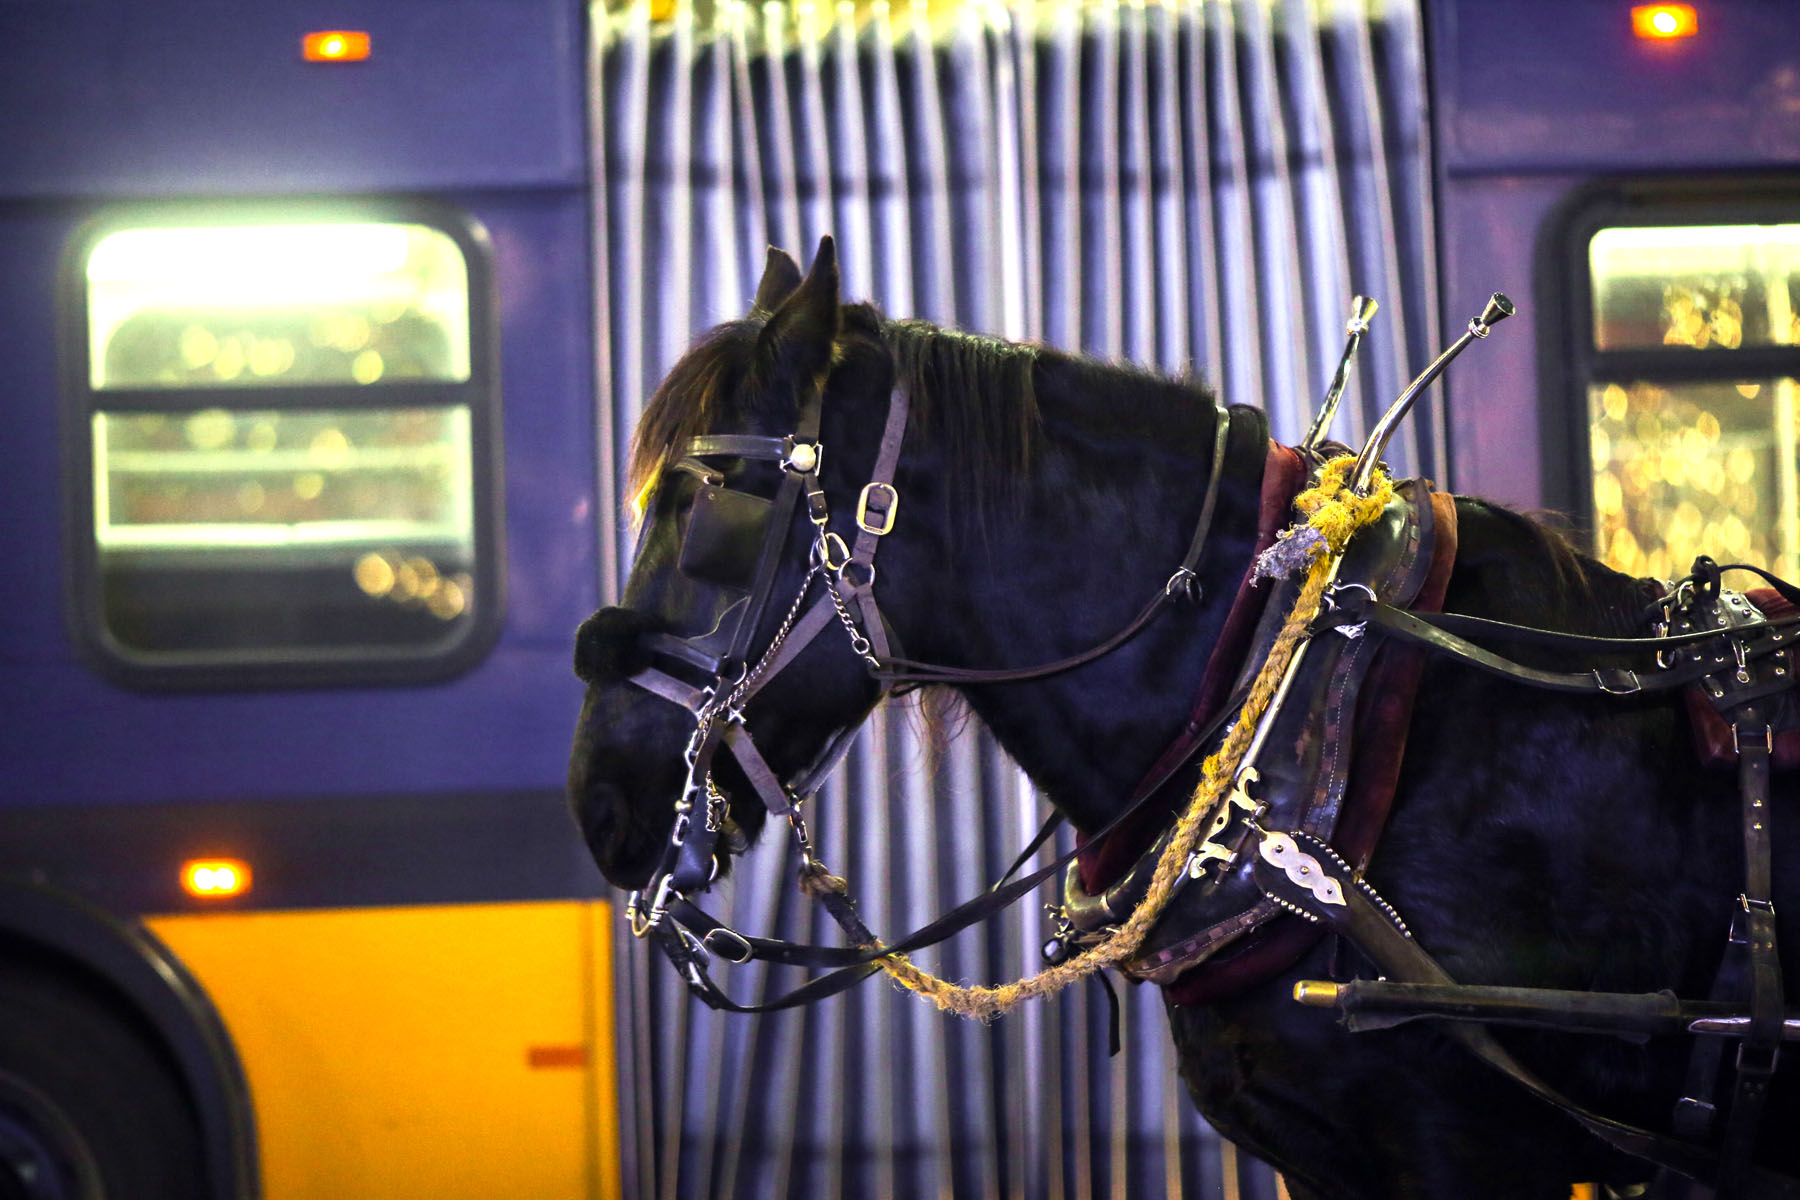 Amos, an 11 year-old Percheron draft horse wearing blinders to block his vision, gets nervous around buses but doesn't mind other city noises according to his owner Steve Beckmann of Sealth Horse Carriages in Seattle, WA on December 9, 2017. Beckmann says he was the first horse and carriage business in Seattle and now, 42 years later, he is the only one left. (© Karen Ducey)